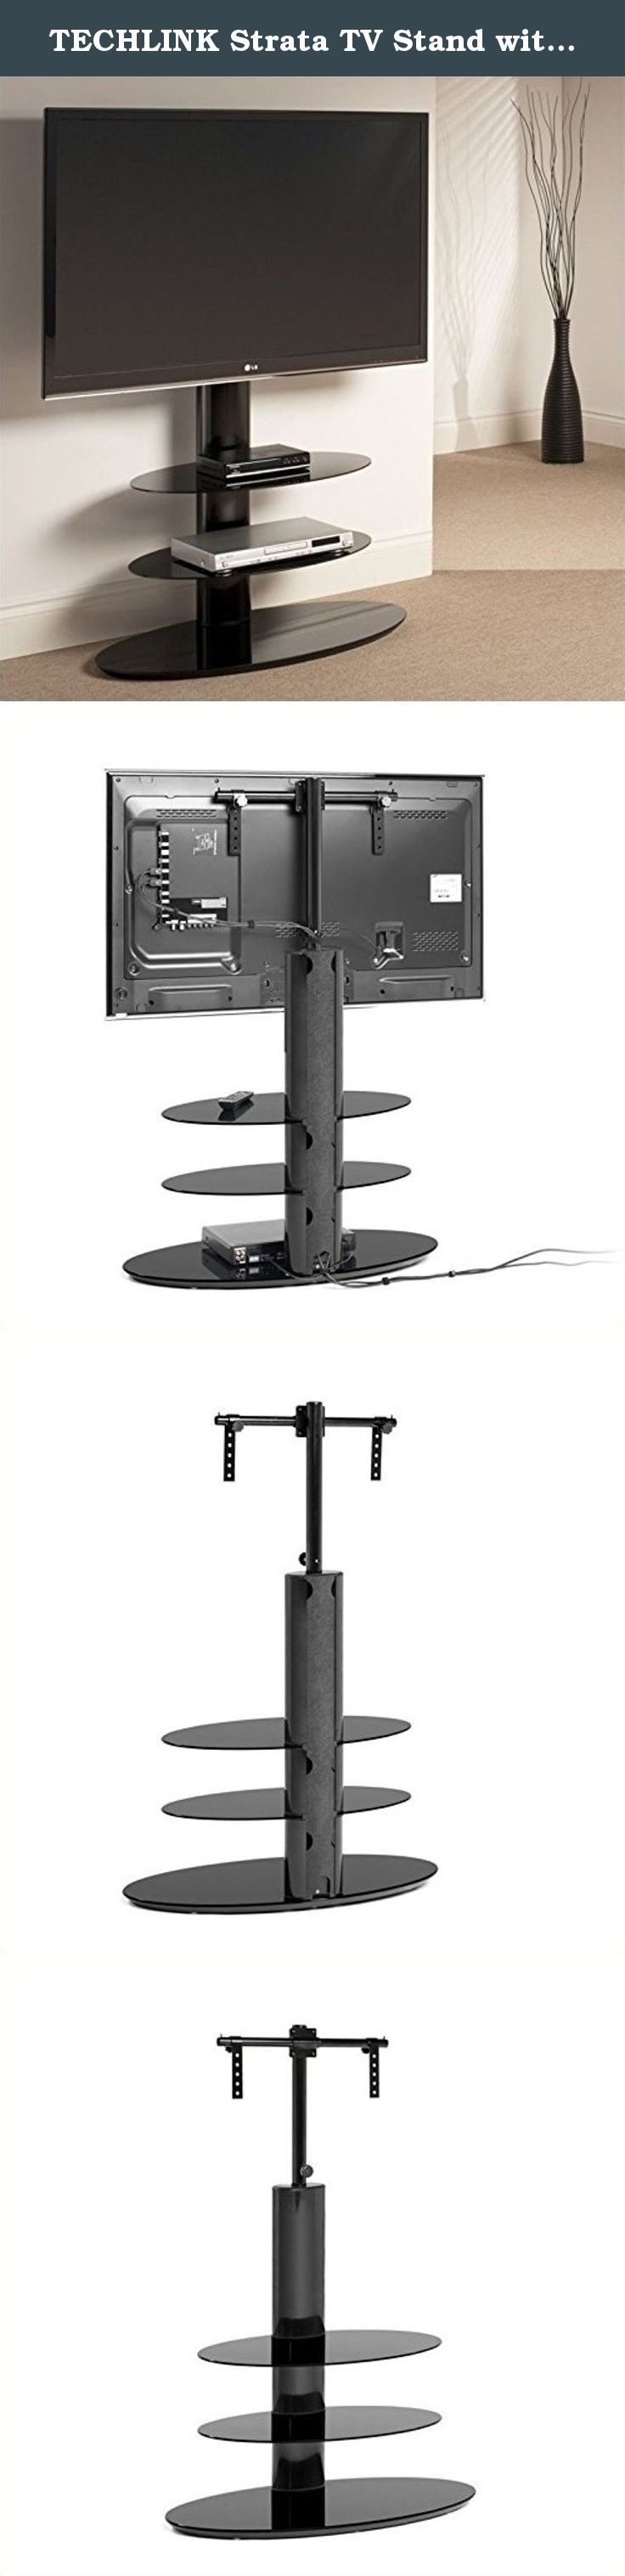 17 Best Ideas About High Tv Stand On Pinterest Corner Tv Long Tv Stand And Diy Table